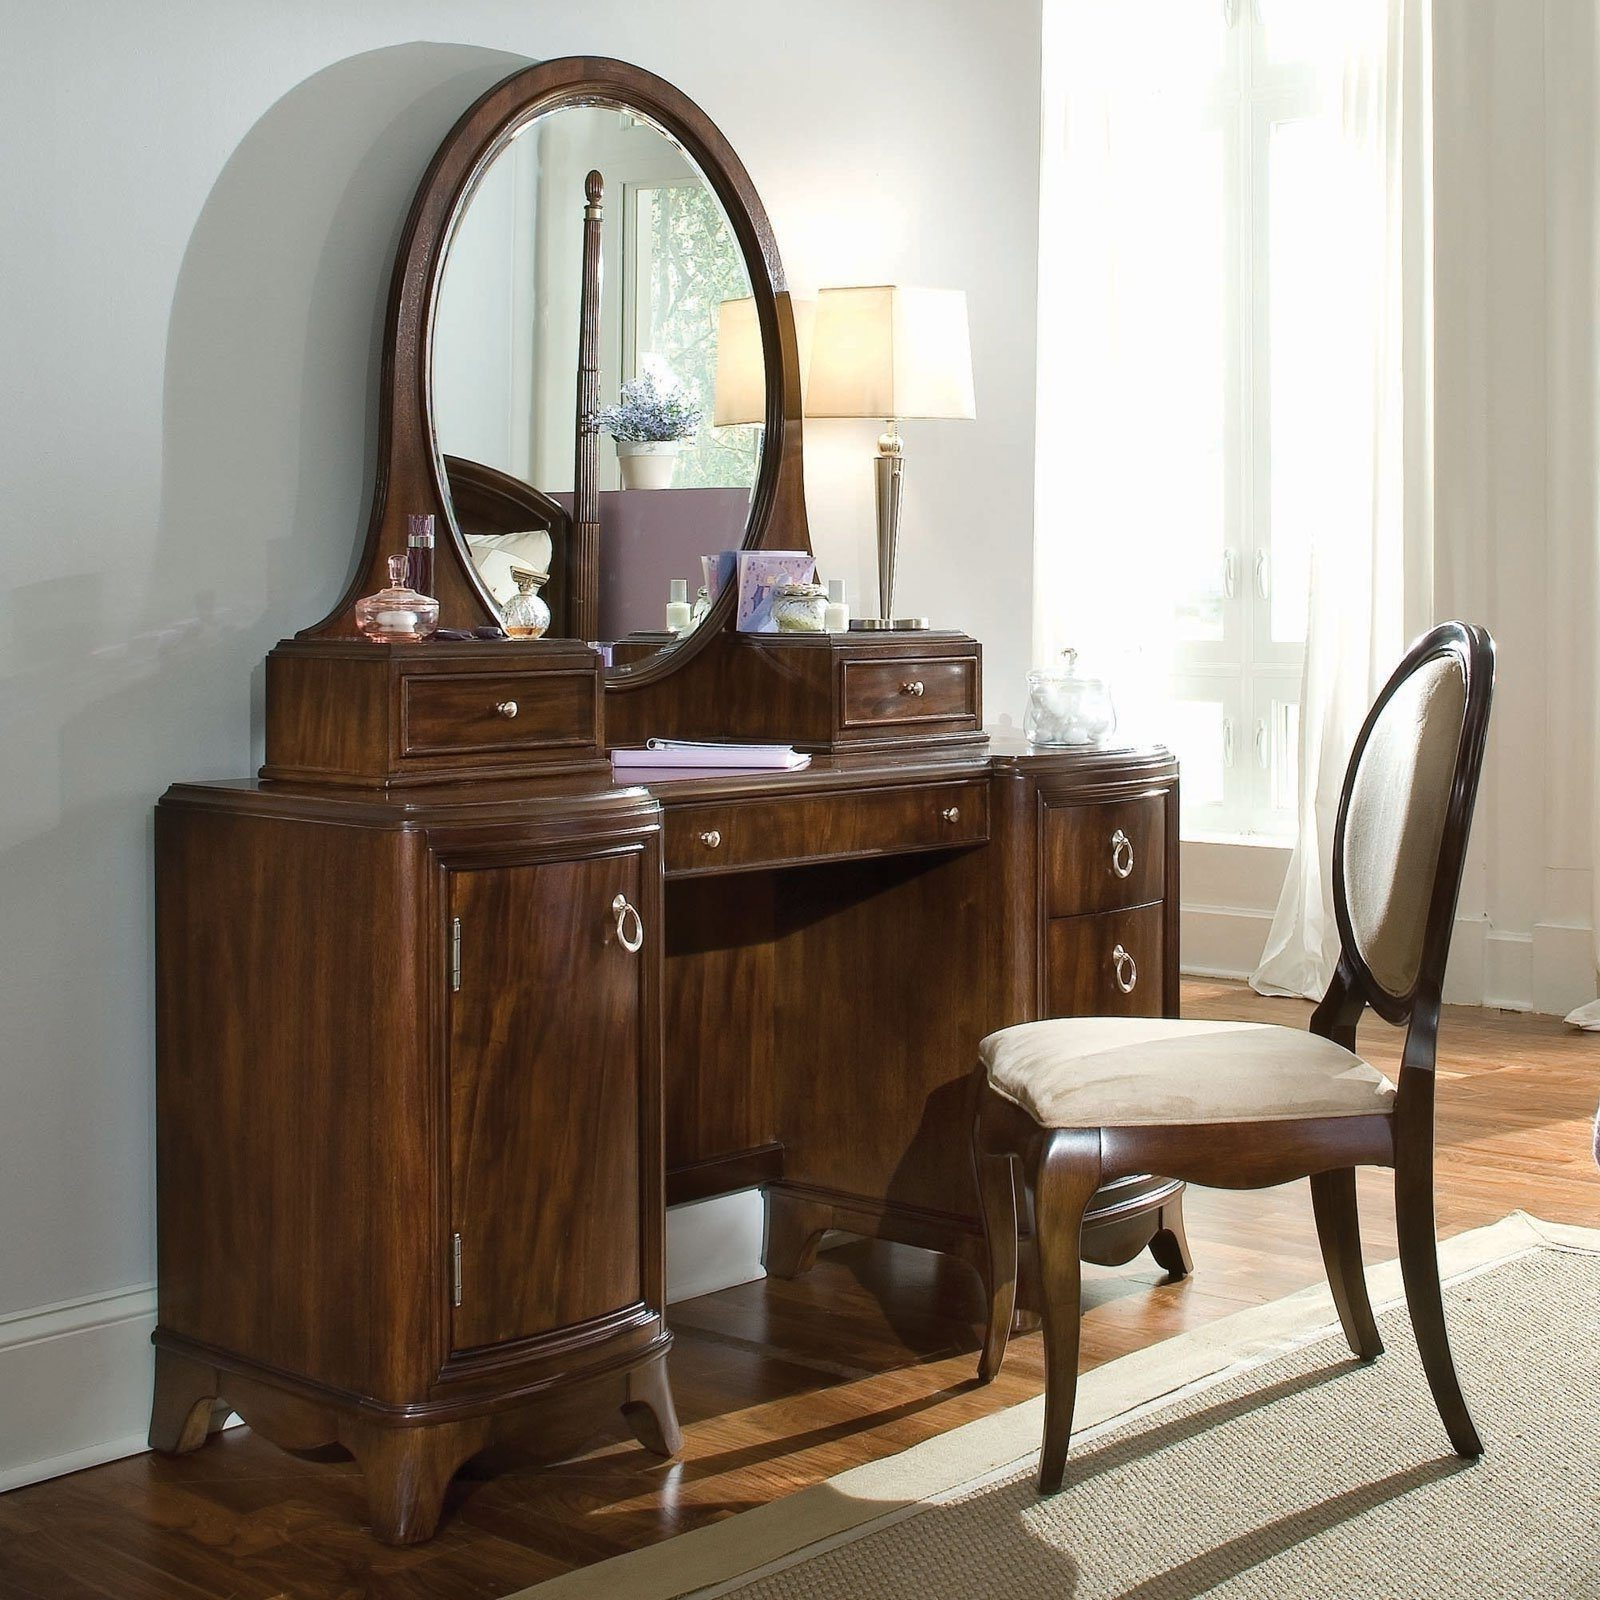 Image of: Broadway Lighted Vanity Mirror Style